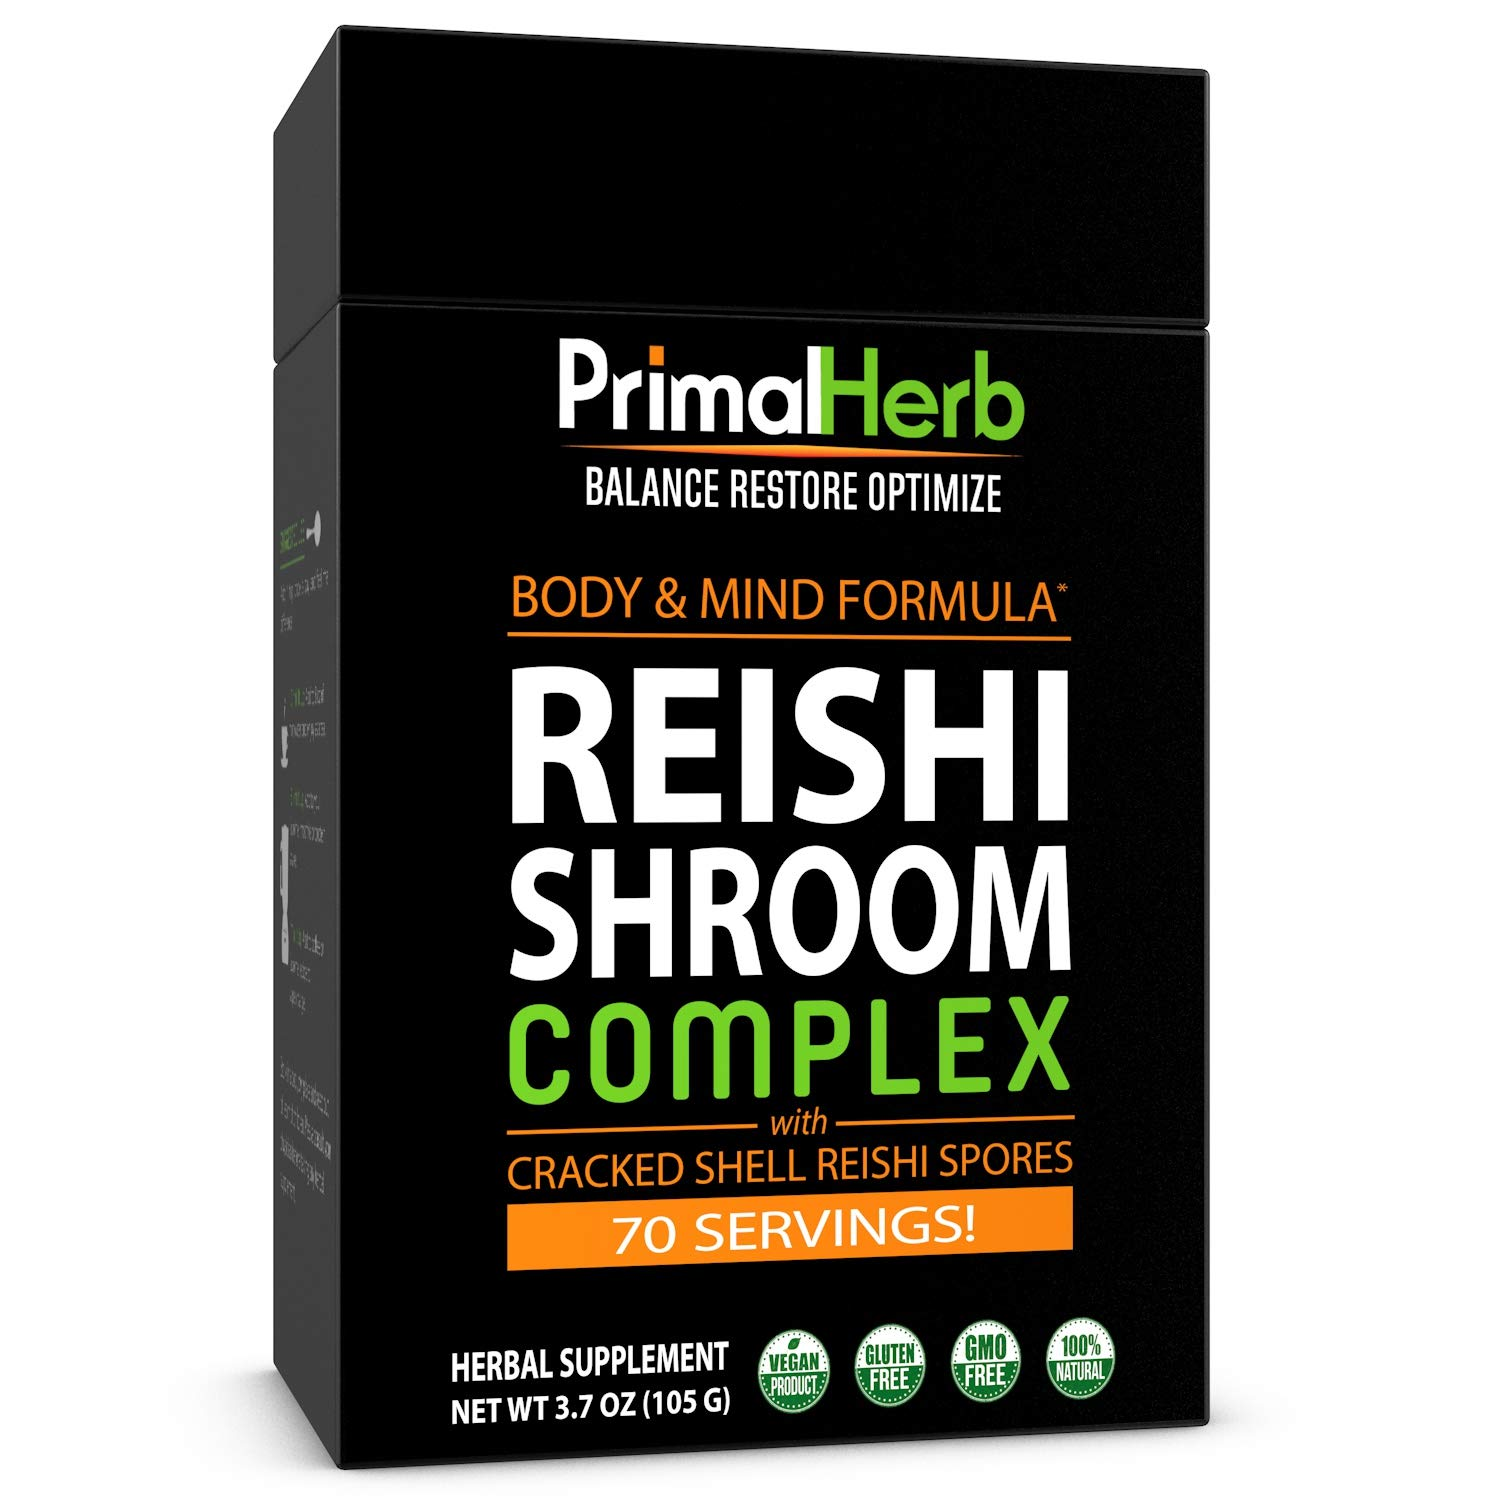 Reishi Mushroom Extract with Reishi Spores | by Primal Herb | Supports Body & Mind | Ganoderma Lucidum Extract Powder Formula | 70 Servings - Includes Bamboo Spoon